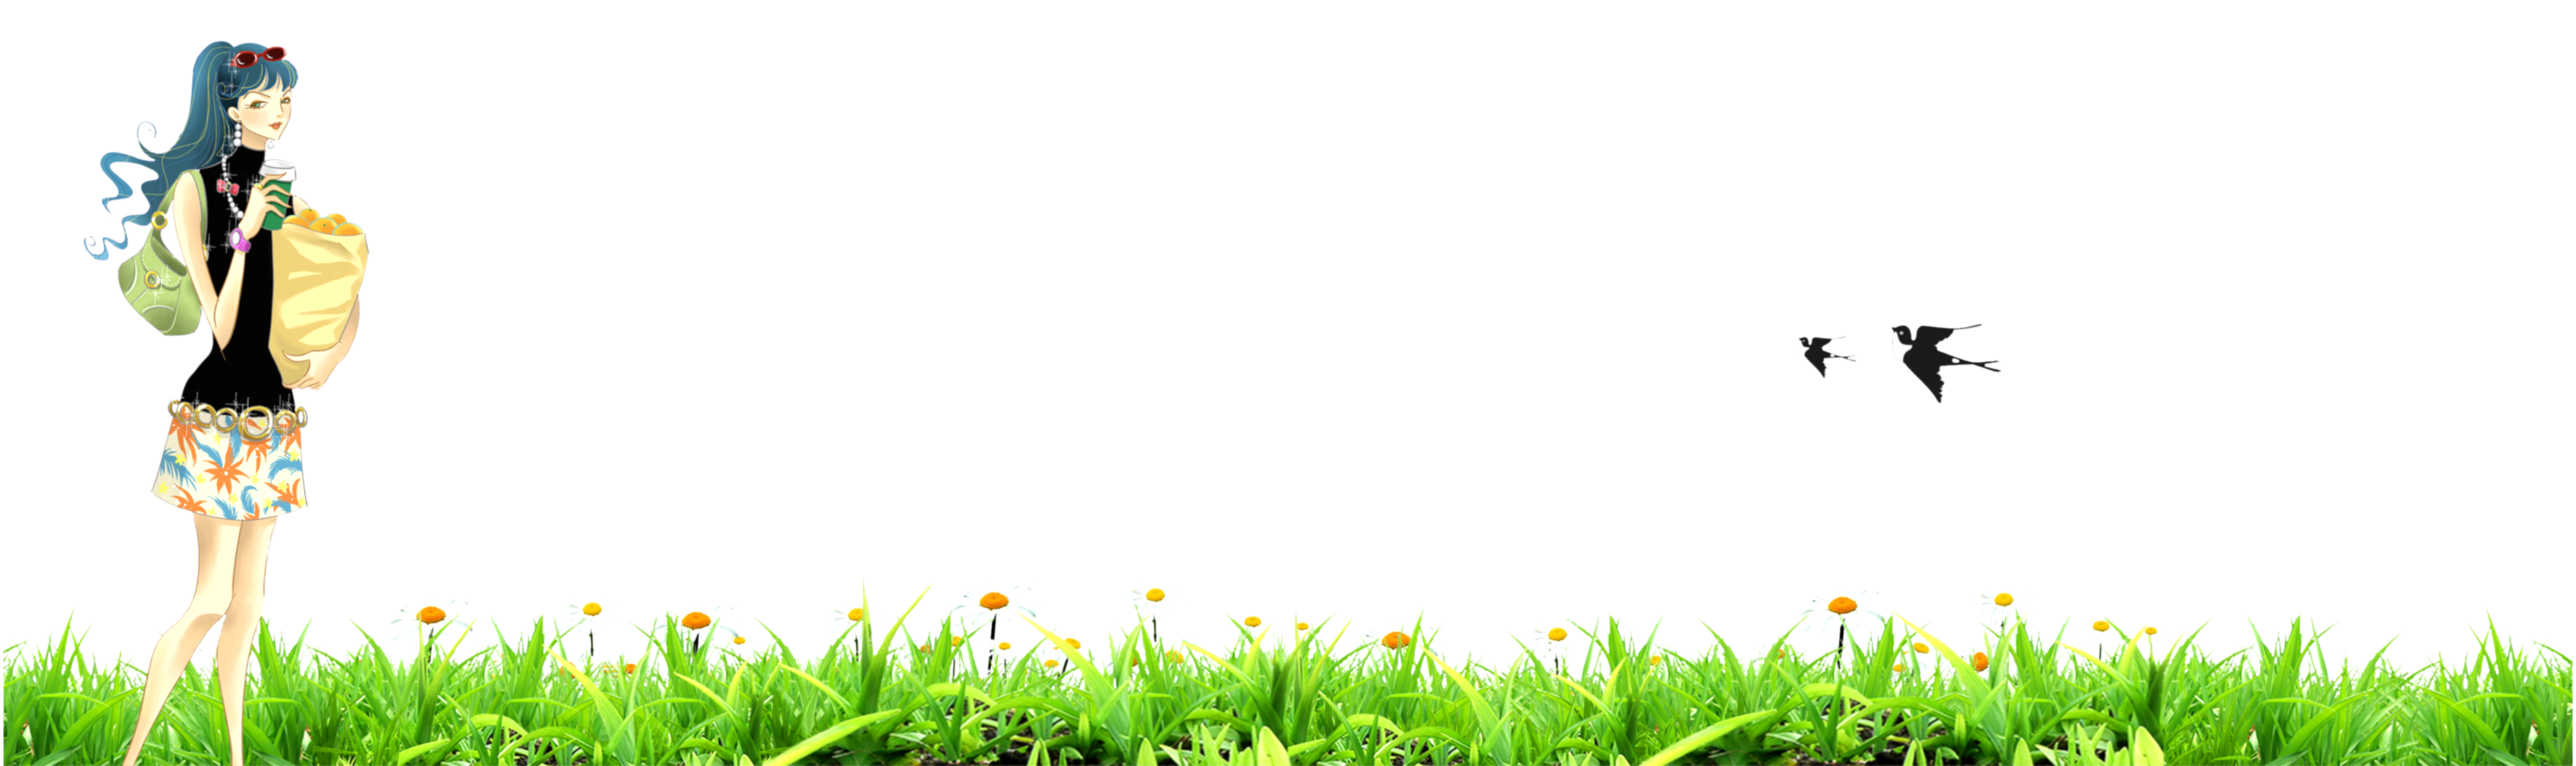 vector nature environment background